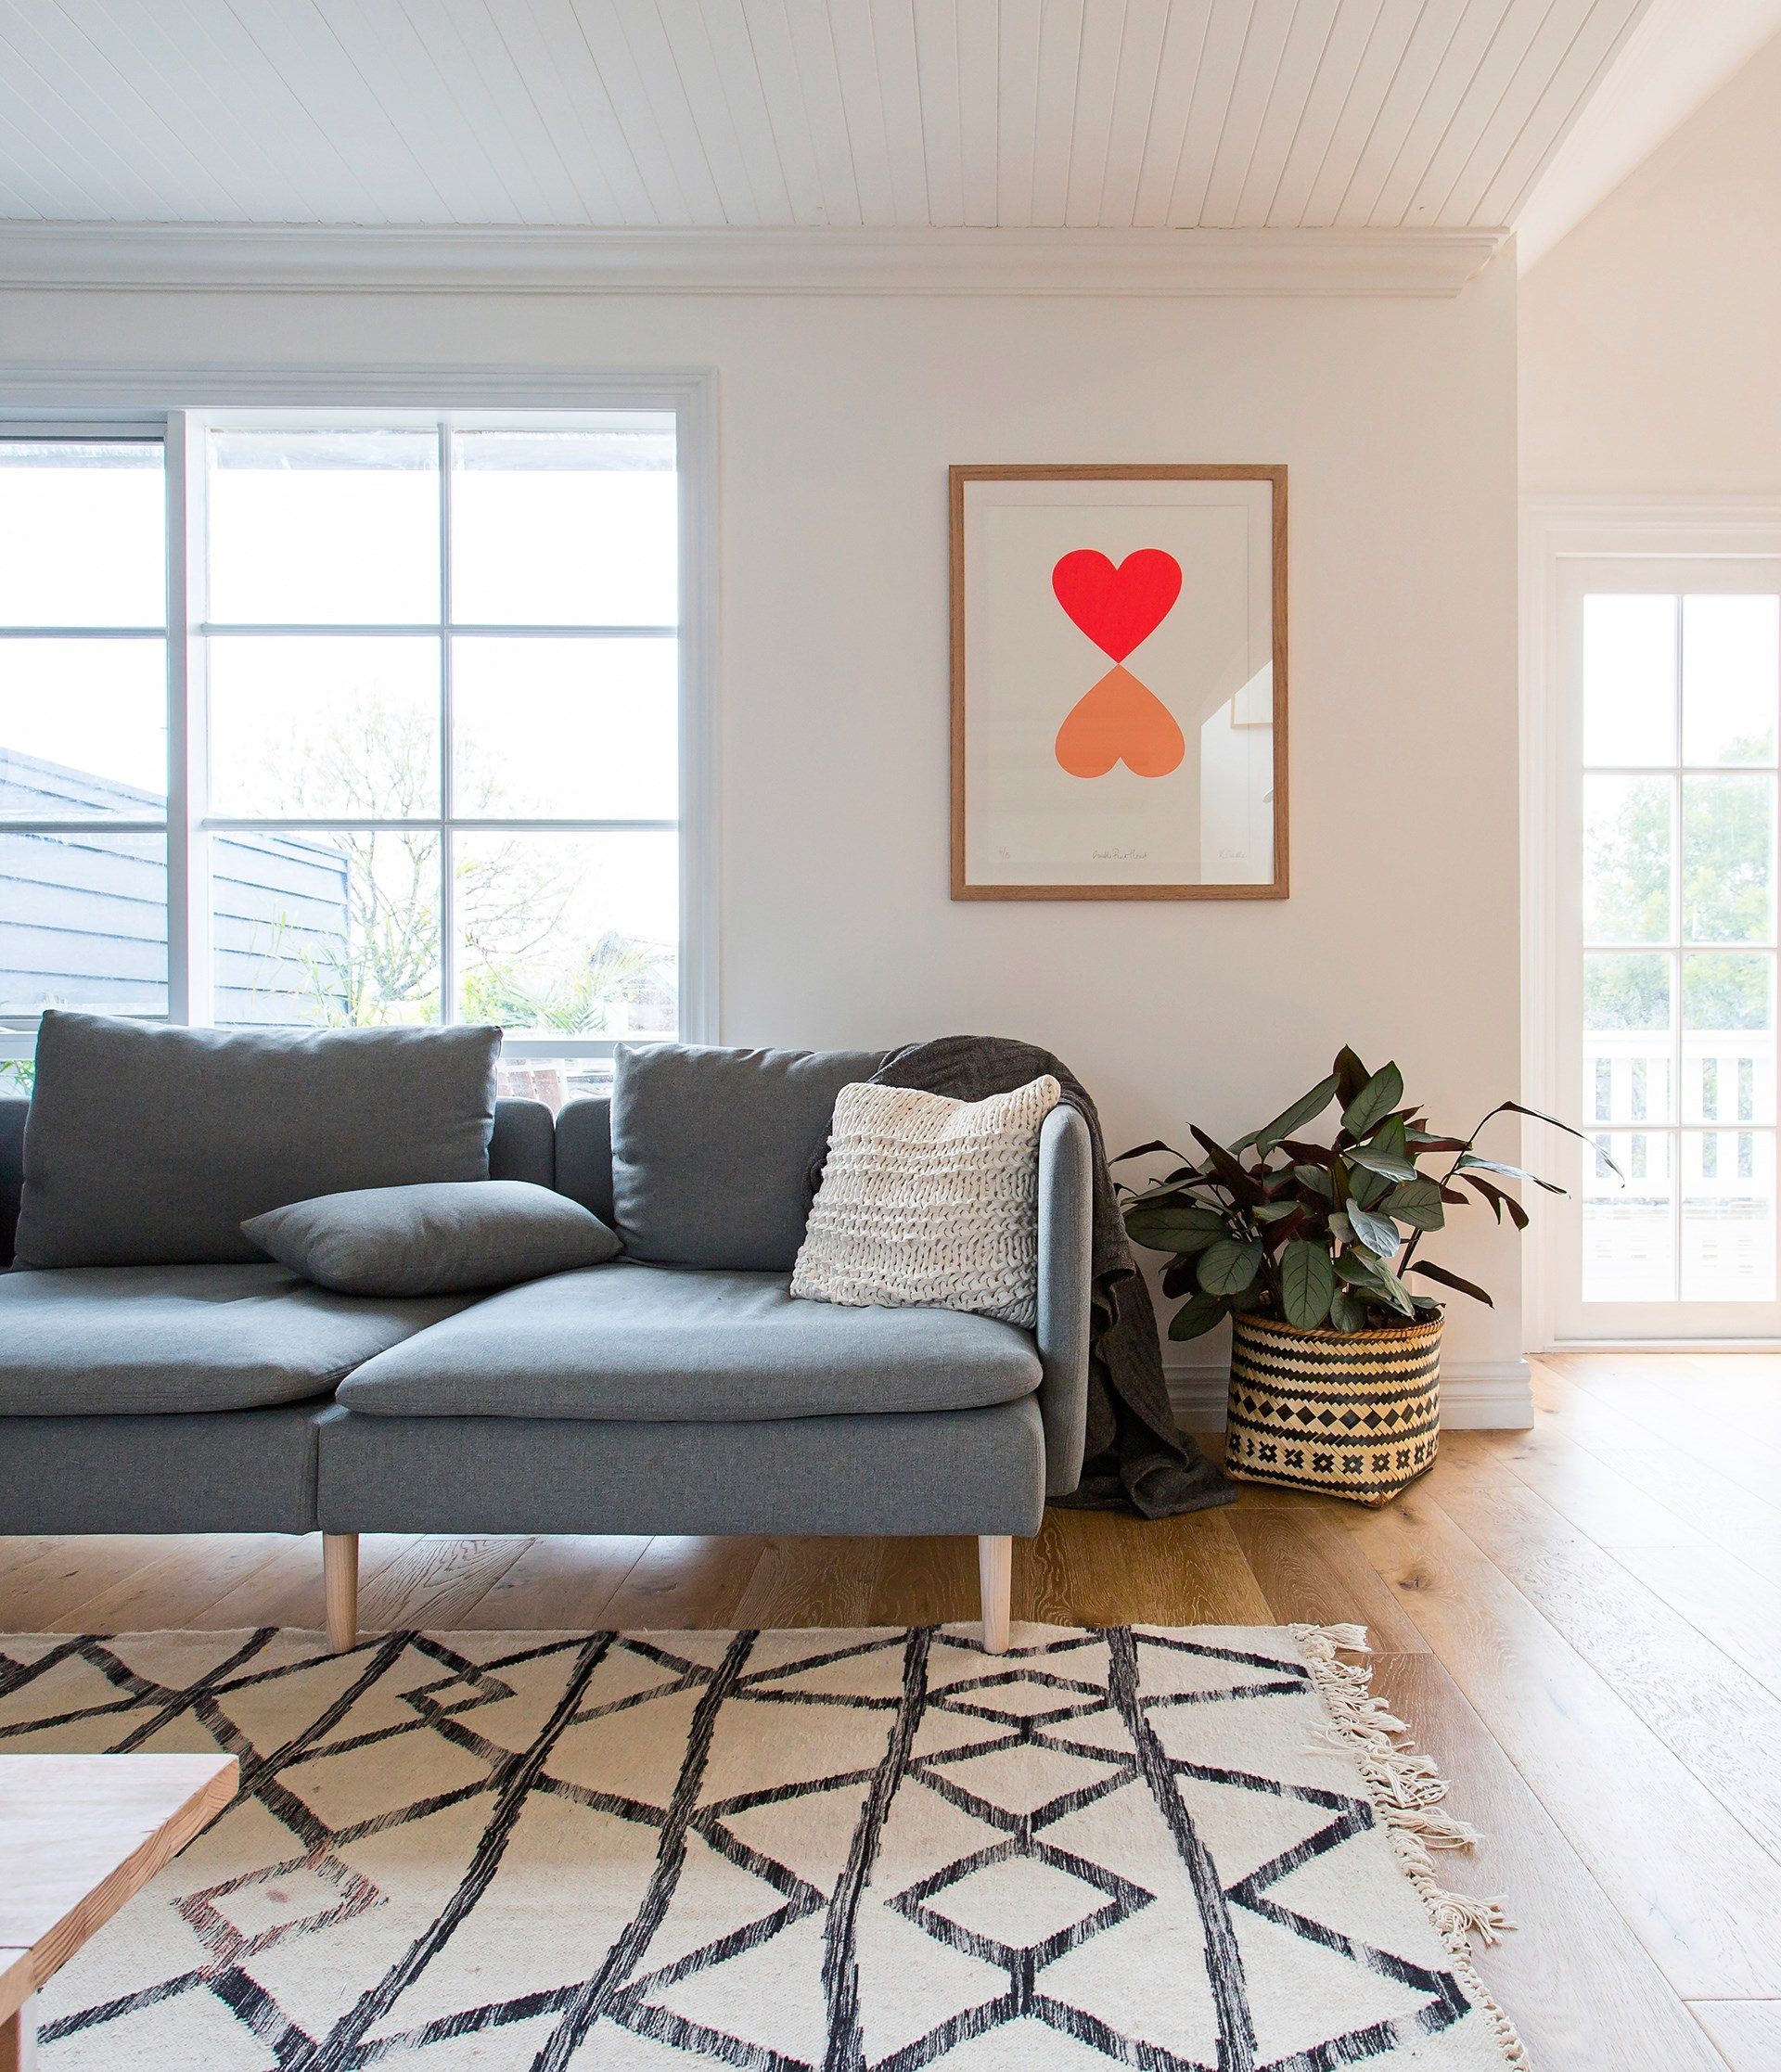 **Emily Kinley** A dated 70s timber shack is transformed into a light-filled family home with chic Scandi style. [See the full home here.](http://www.homestolove.com.au/timber-shack-gets-modern-renovation-3661) or [vote for this home](http://www.homestolove.com.au/homes-reader-home-of-the-year-4499).